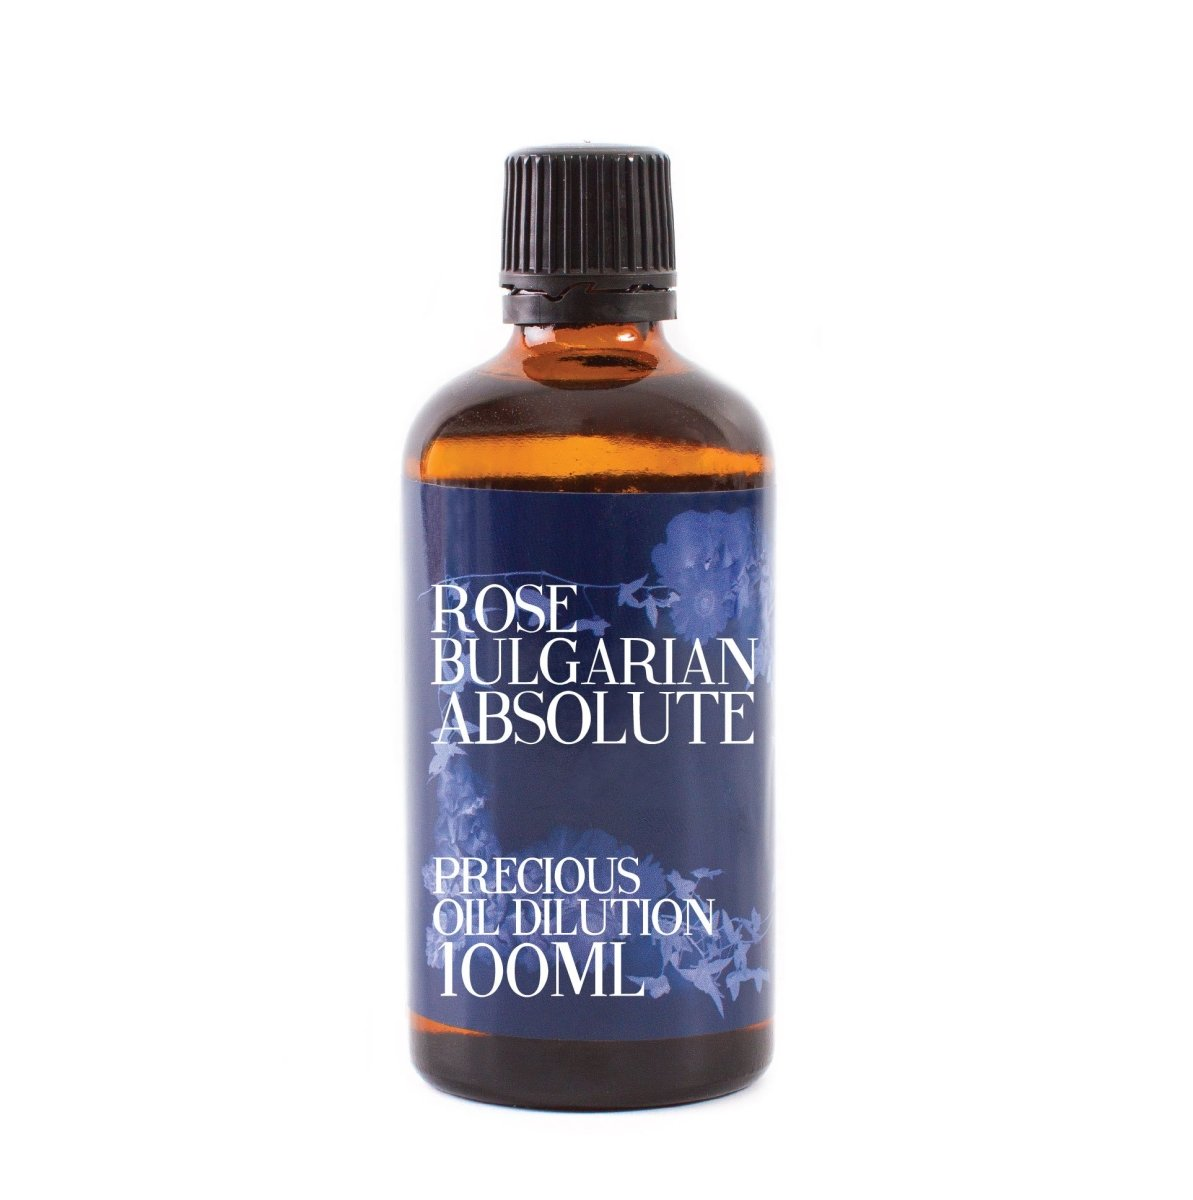 Rose Bulgarian Absolute Oil Dilution - Mystic Moments UK